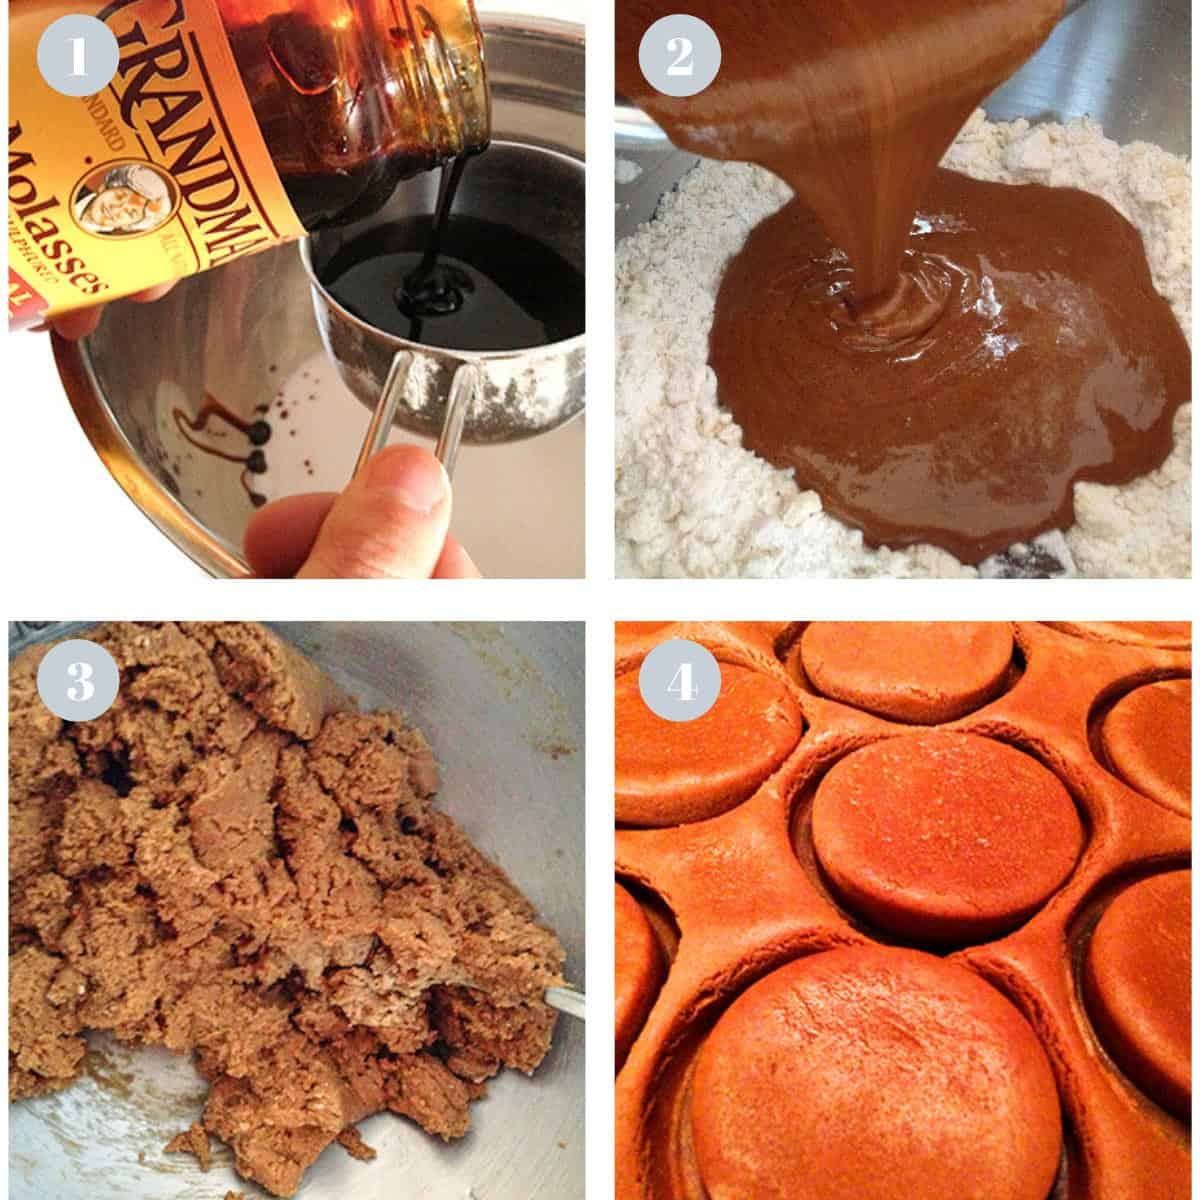 Pouring molasses into a mixing bowl and making molasses cookies.